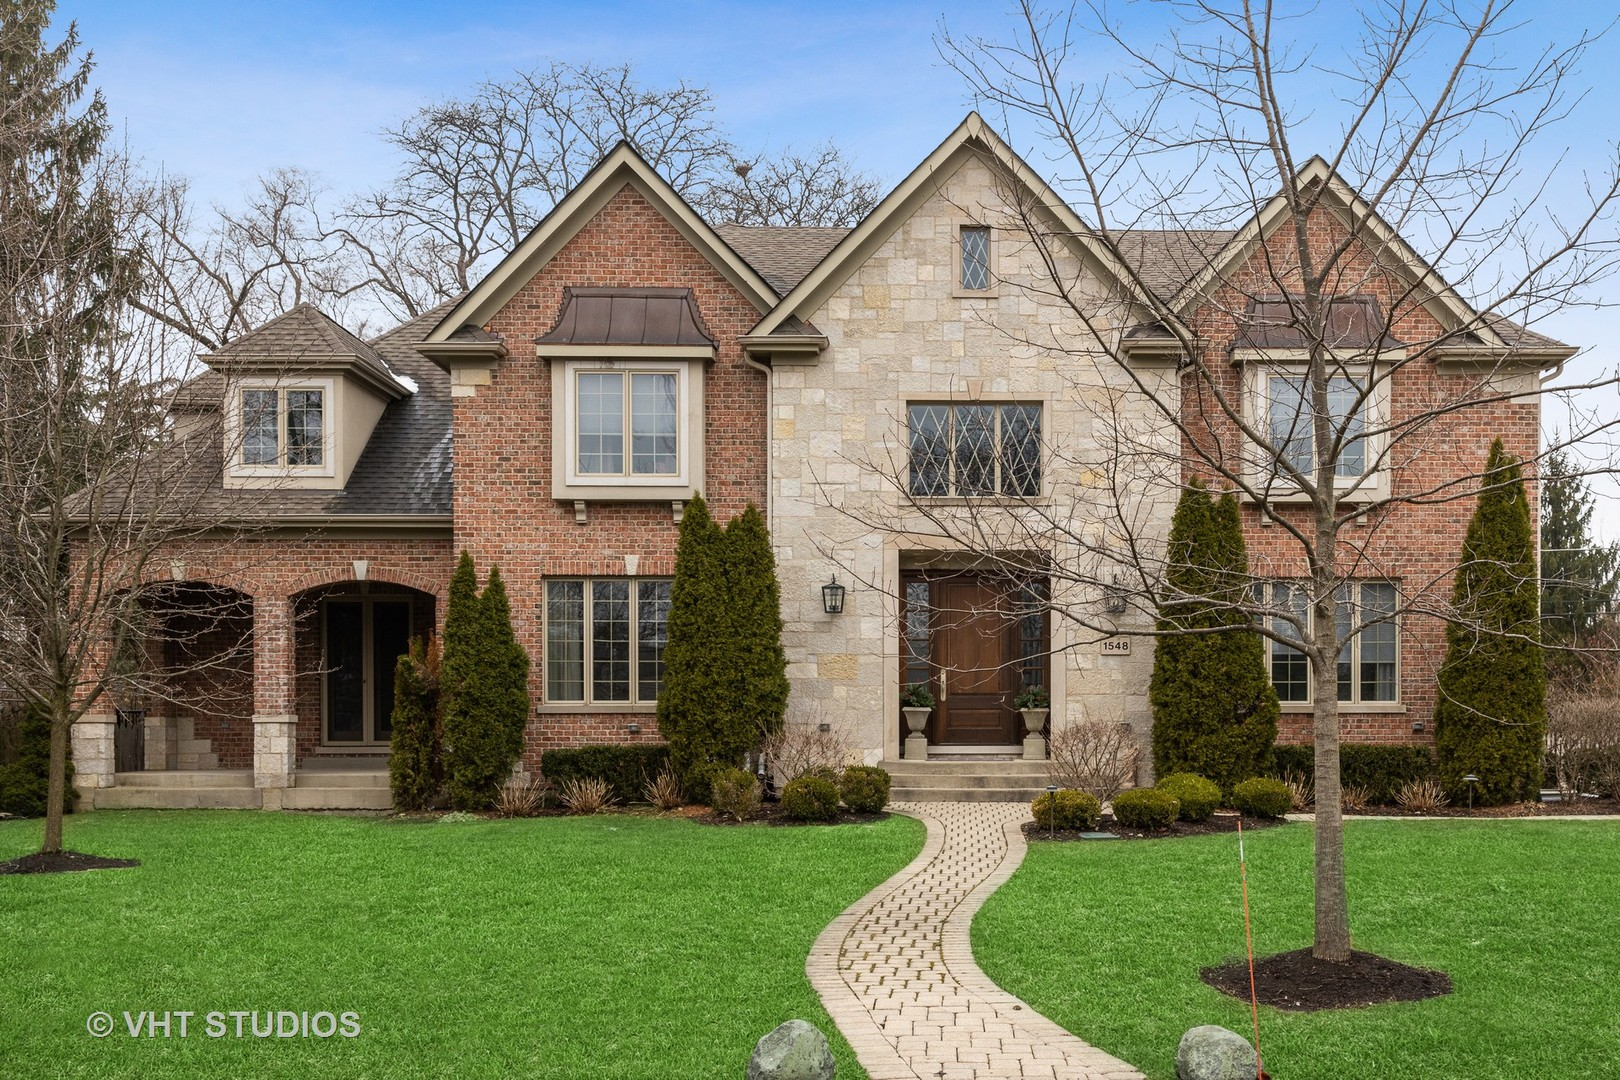 primary photo for 1548 Meadow Lane, Glenview, IL 60025, US